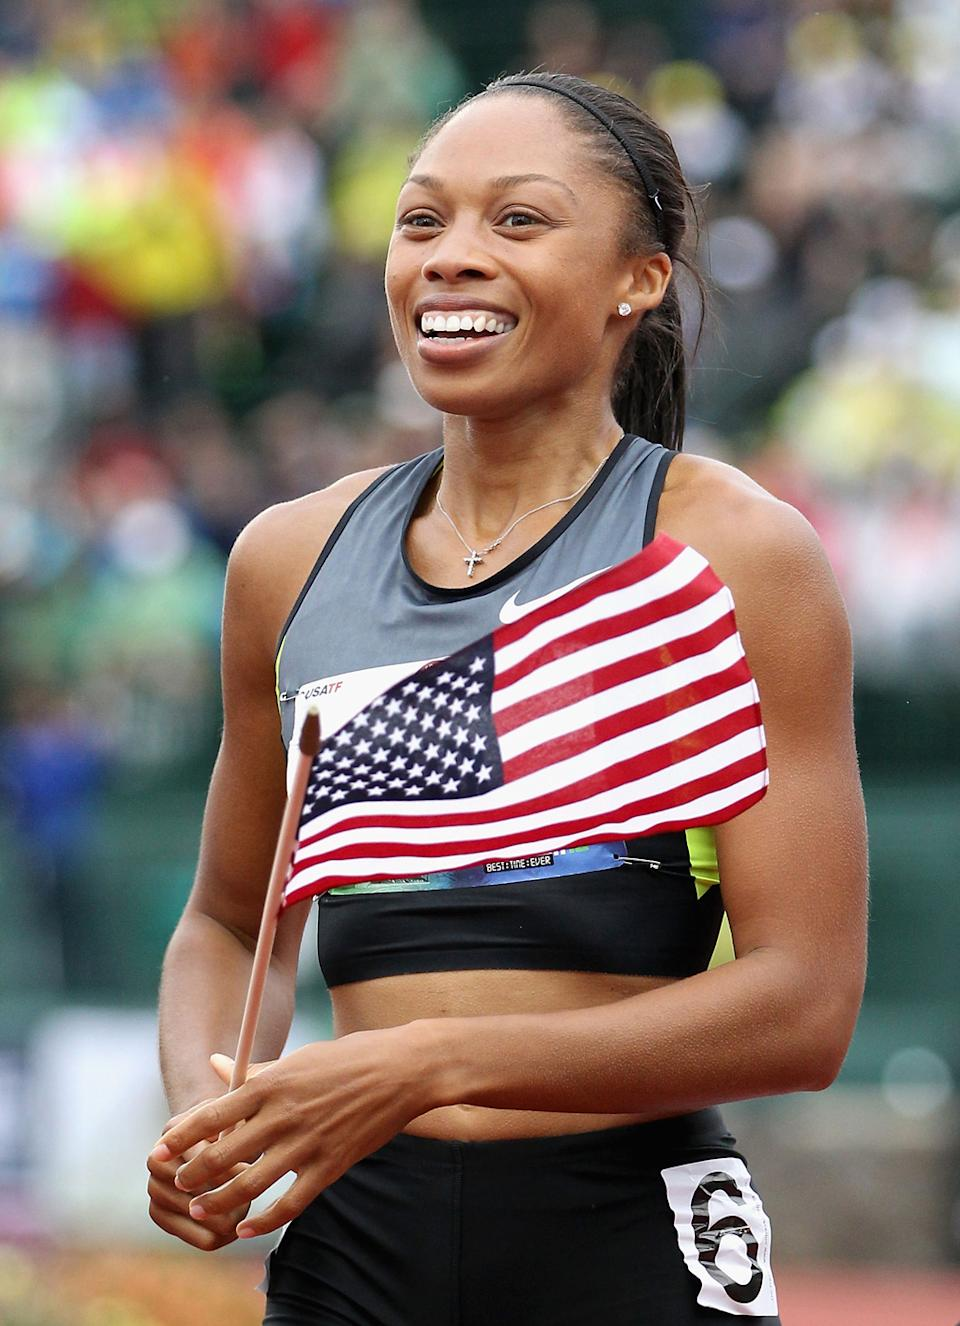 """<b>Allyson Felix</b><br> Team USA's Allyson Felix is the only woman to be a three-time Athletics World Championship gold medalist. She was nicknamed """"Chicken Legs"""" in high school, but her now perfectly built muscular body is far from that. (Photo by Christian Petersen/Getty Images)"""